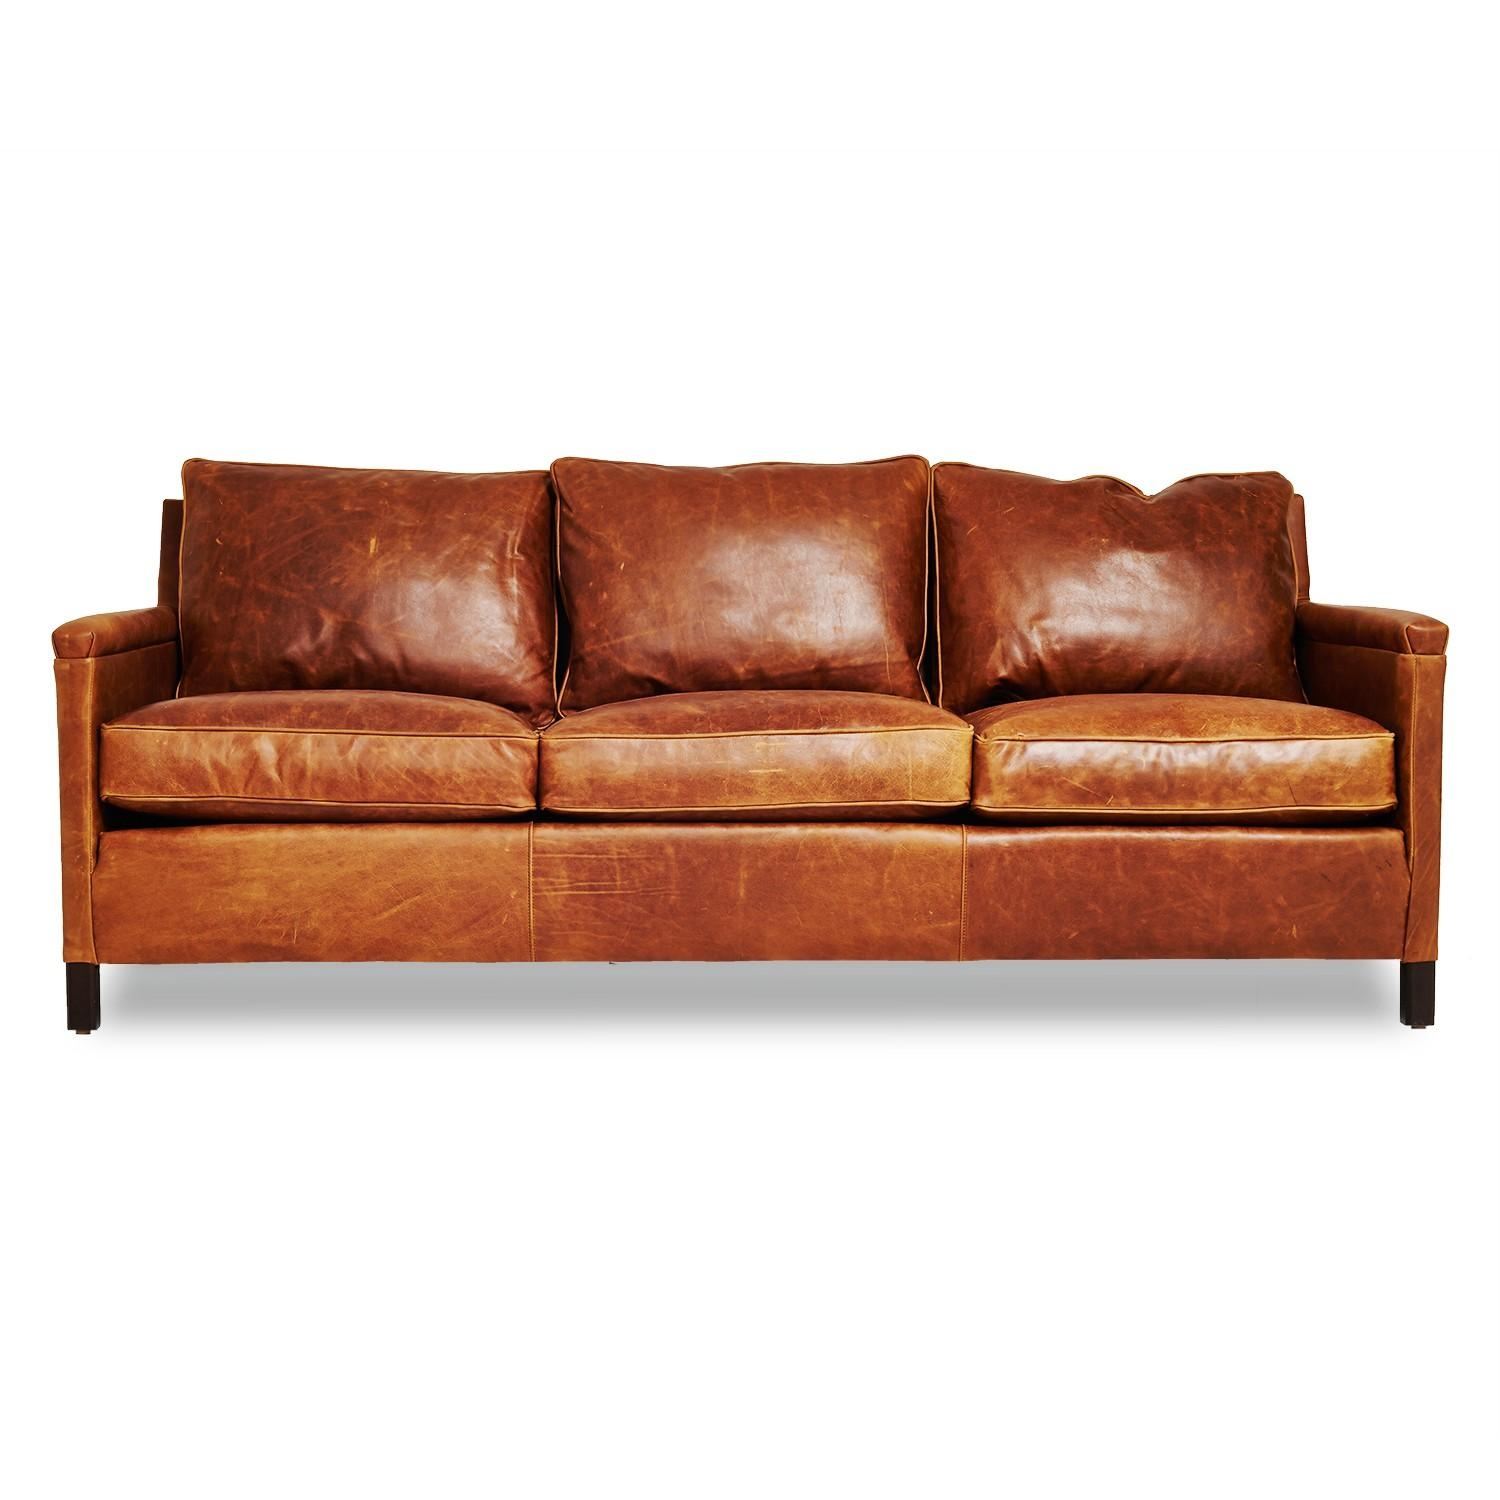 Colorful Sofas 20 Top Camel Color Leather Sofas Sofa Ideas